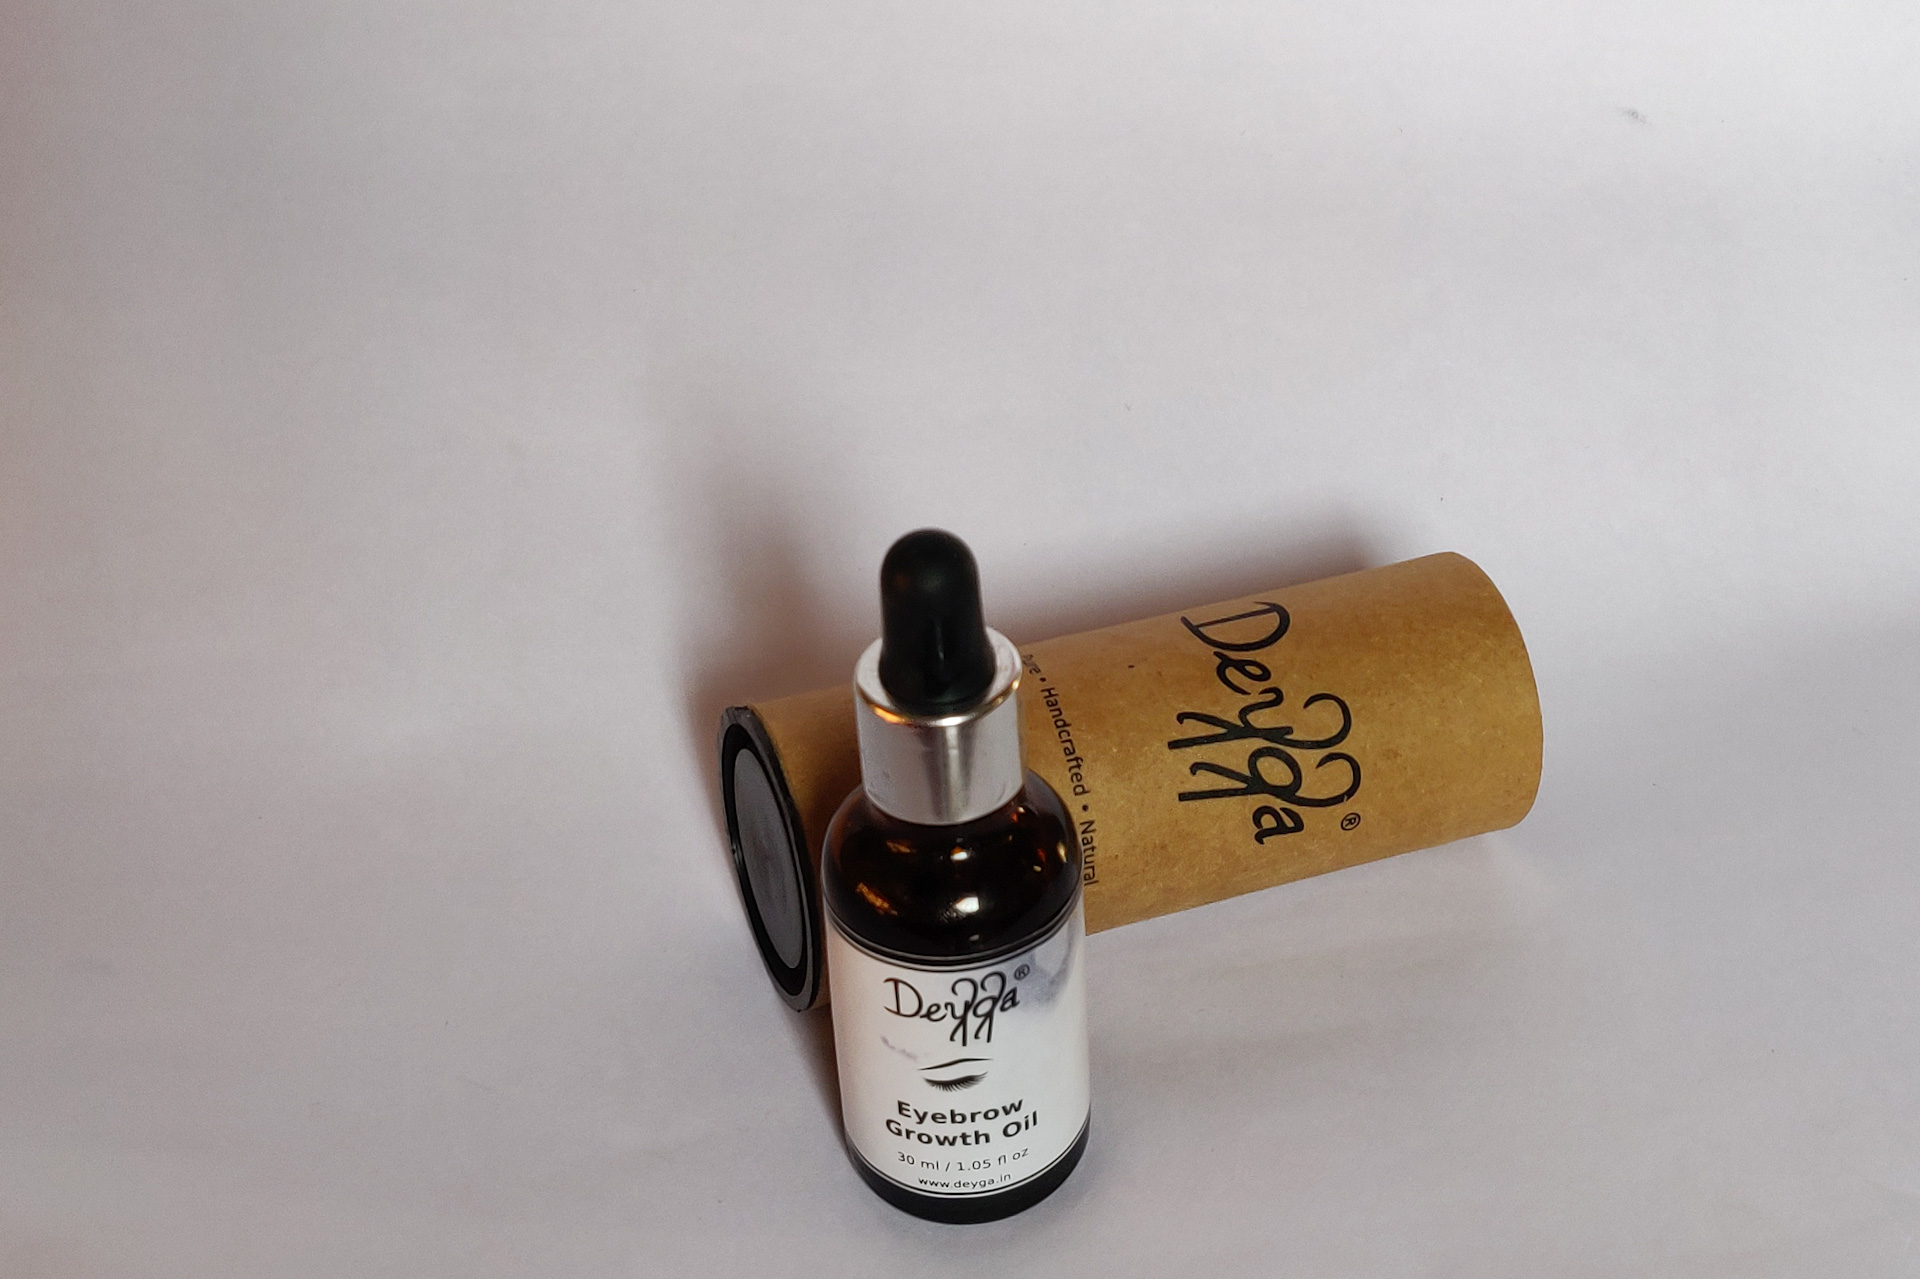 Deyga Eyebrow Growth Oil